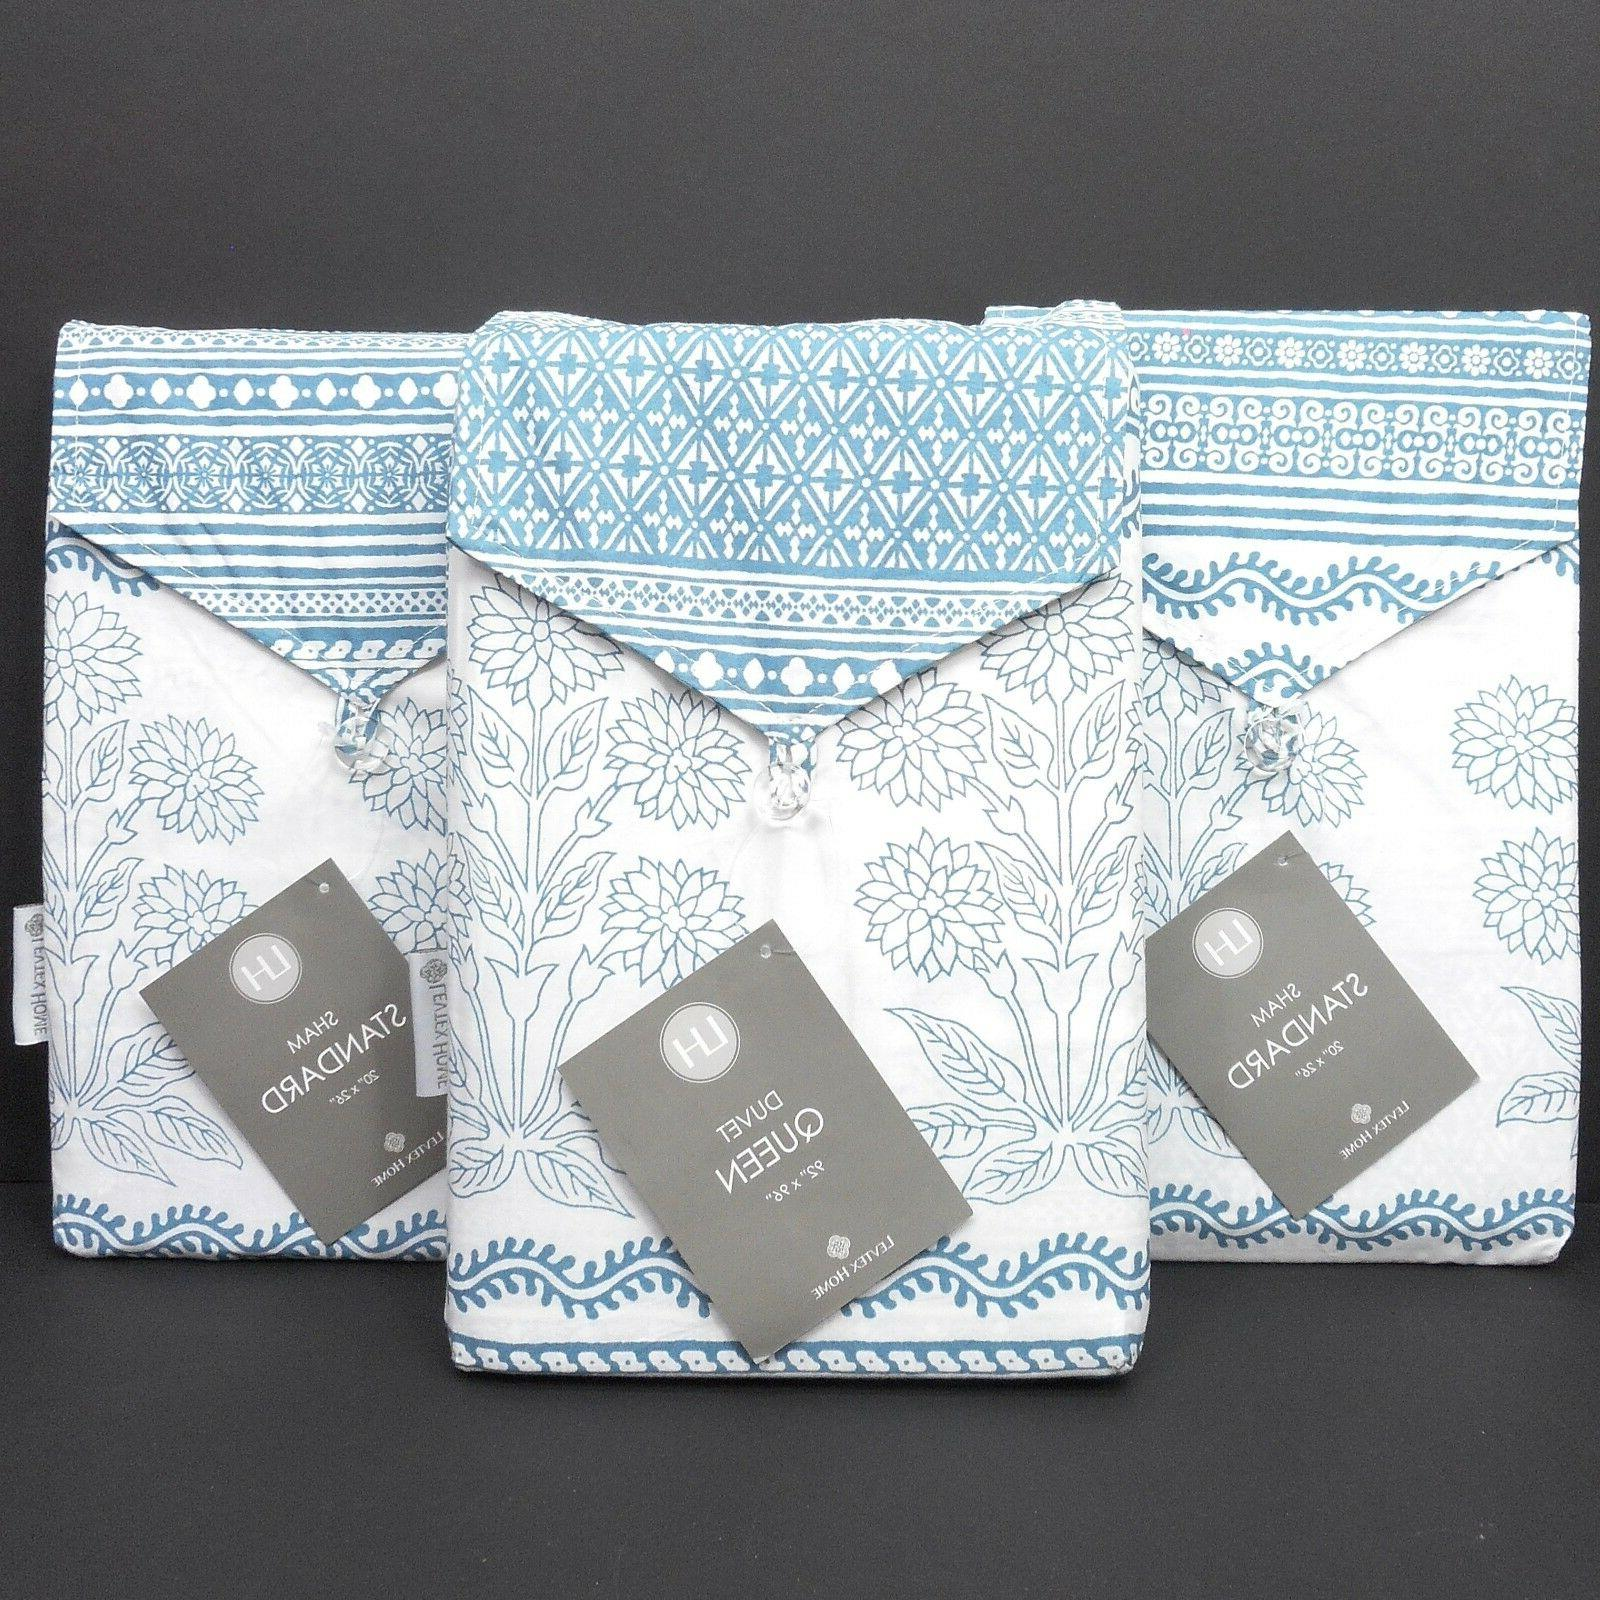 LEVTEX HOME Moroccan QUEEN DUVET COVER SET New White Teal Fl